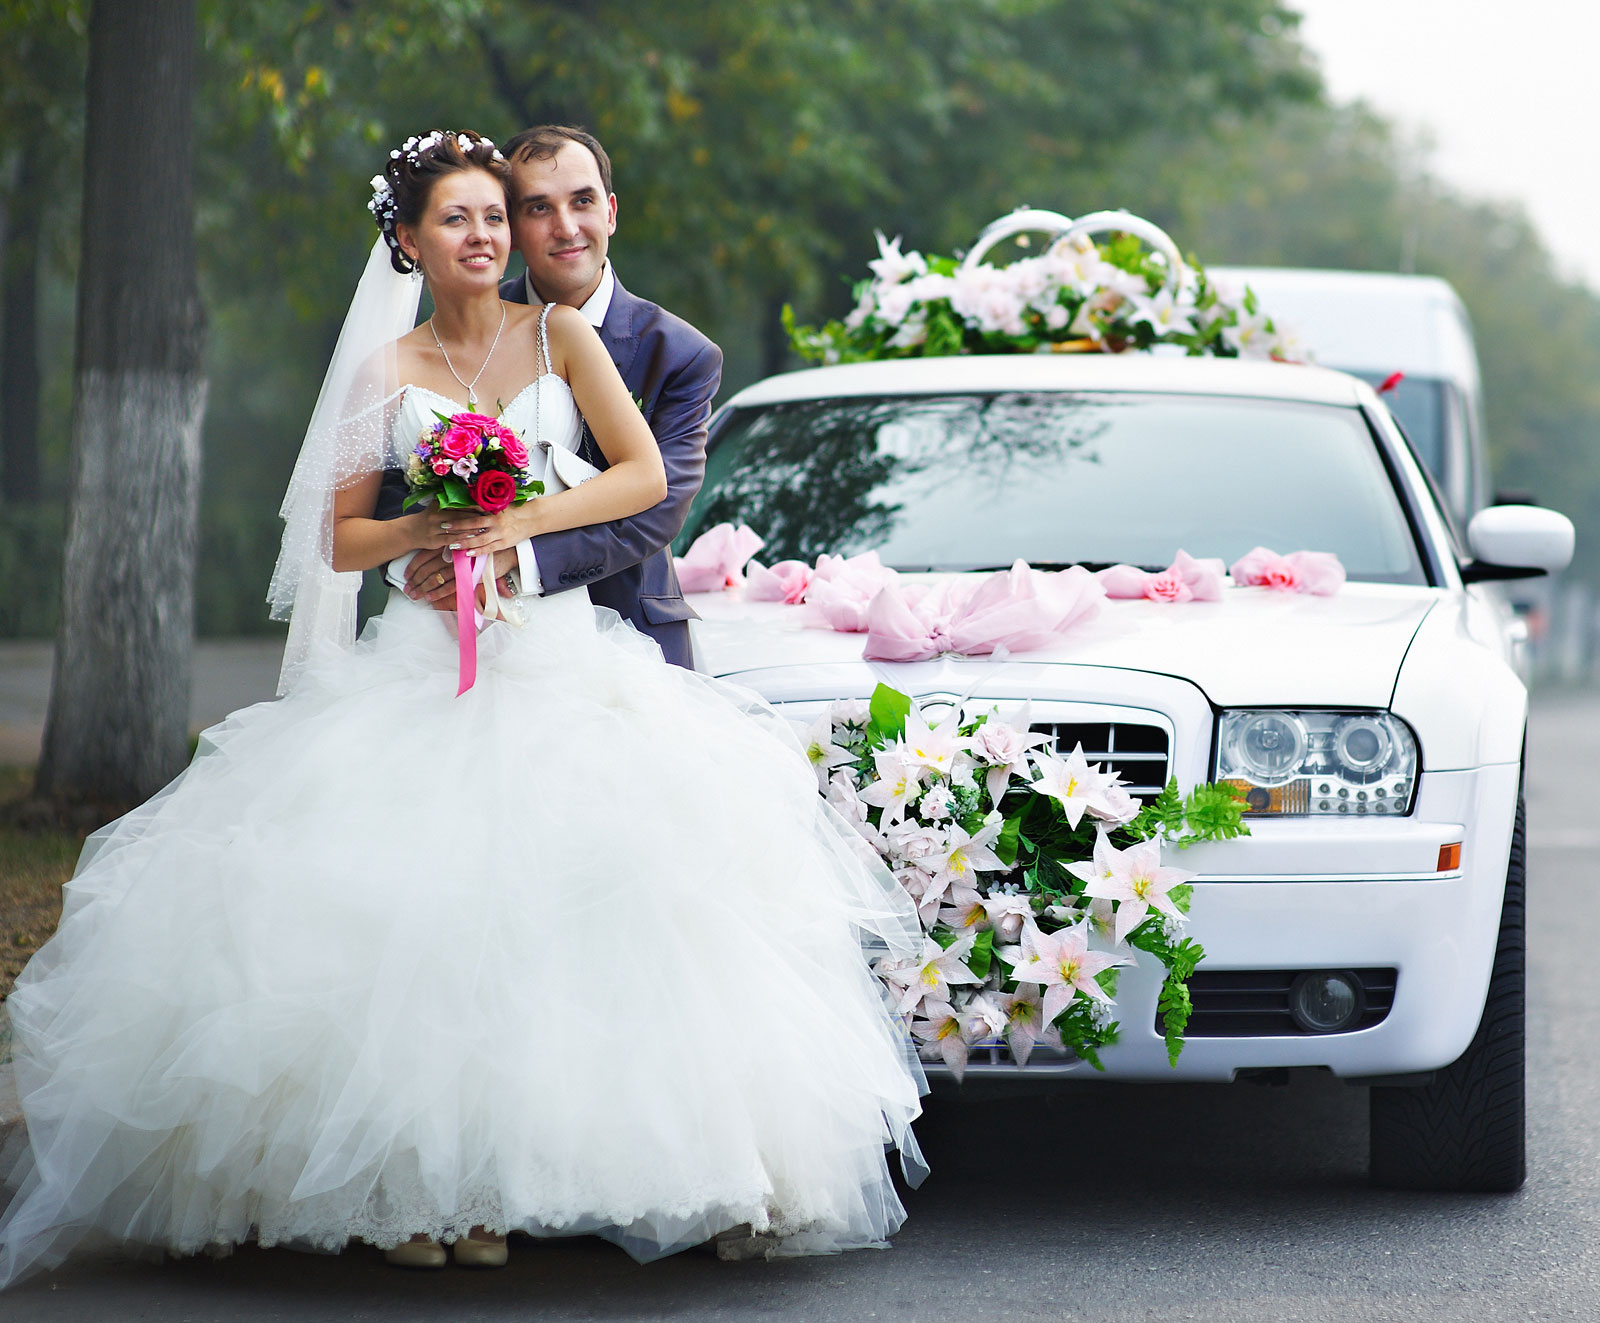 weddinglimohire